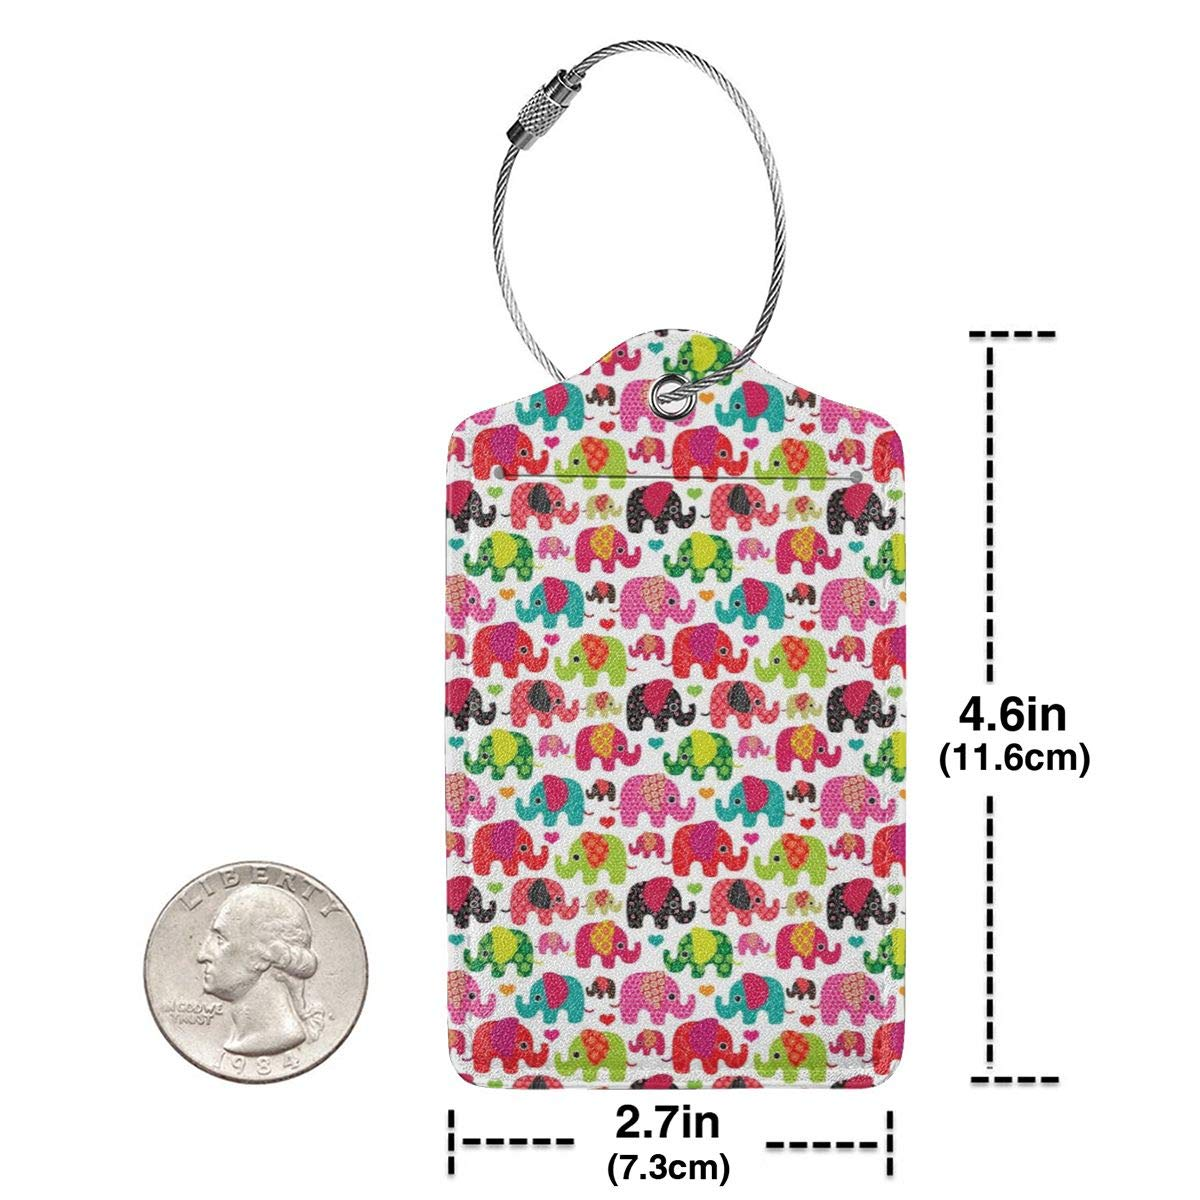 Lovely Elephants Travel Luggage Tags With Full Privacy Cover Leather Case And Stainless Steel Loop